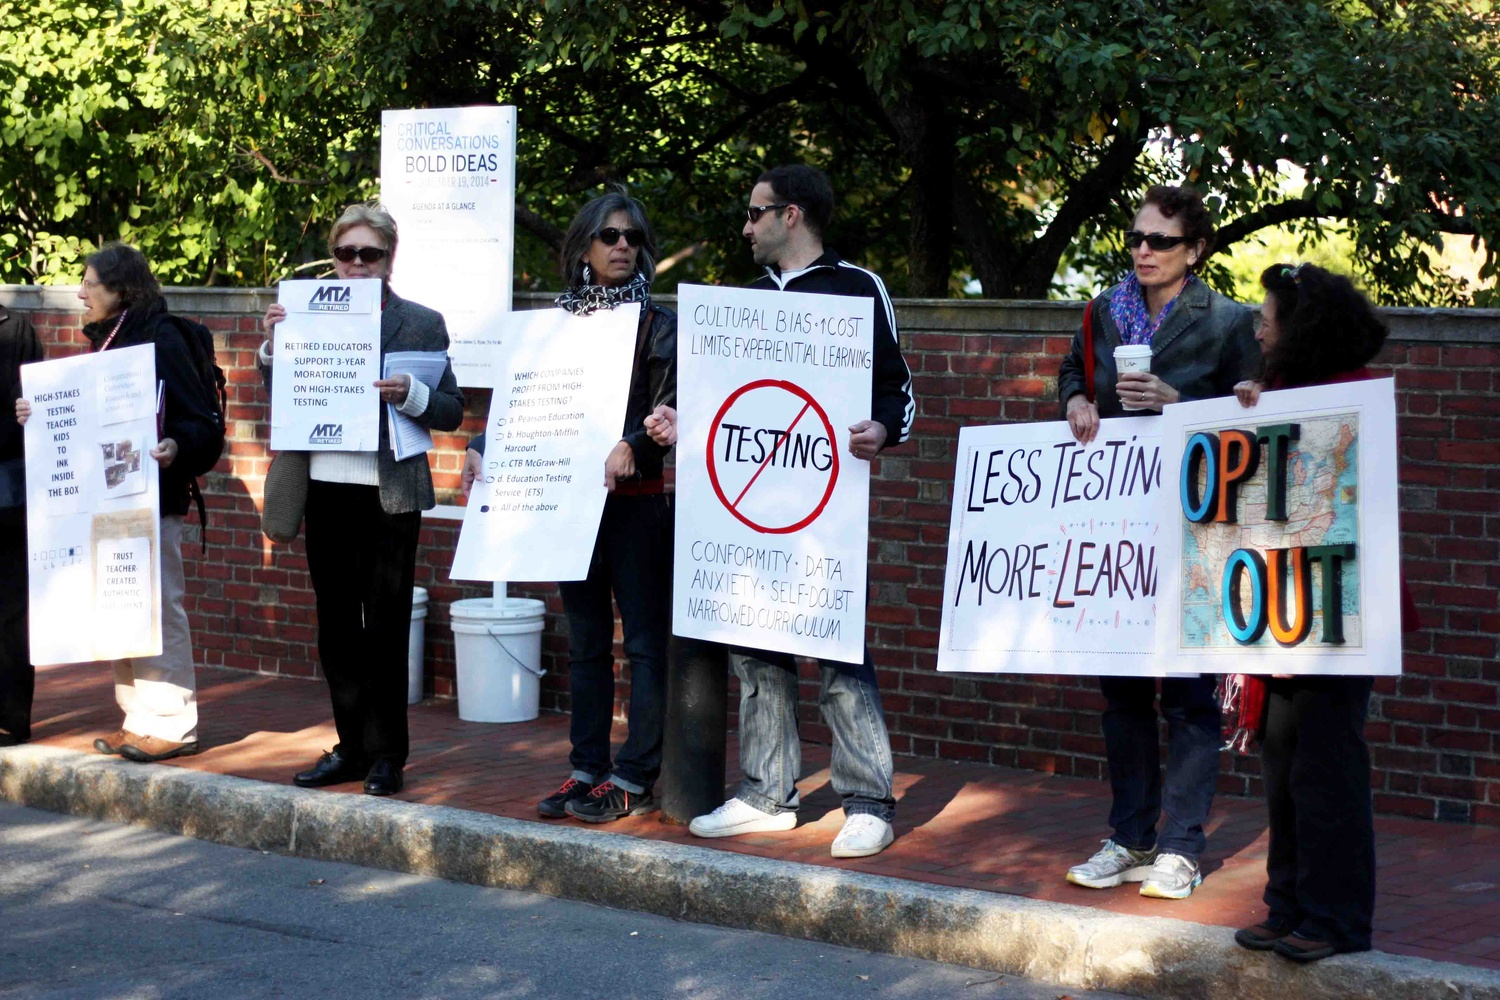 Members of Citizens for Public Schools, the Massachusetts Teachers Association, and other organizations stand outside the Graduate School of Education to protest against U.S. Secretary of Education Arne S. Duncan's policies on high-stakes testing.